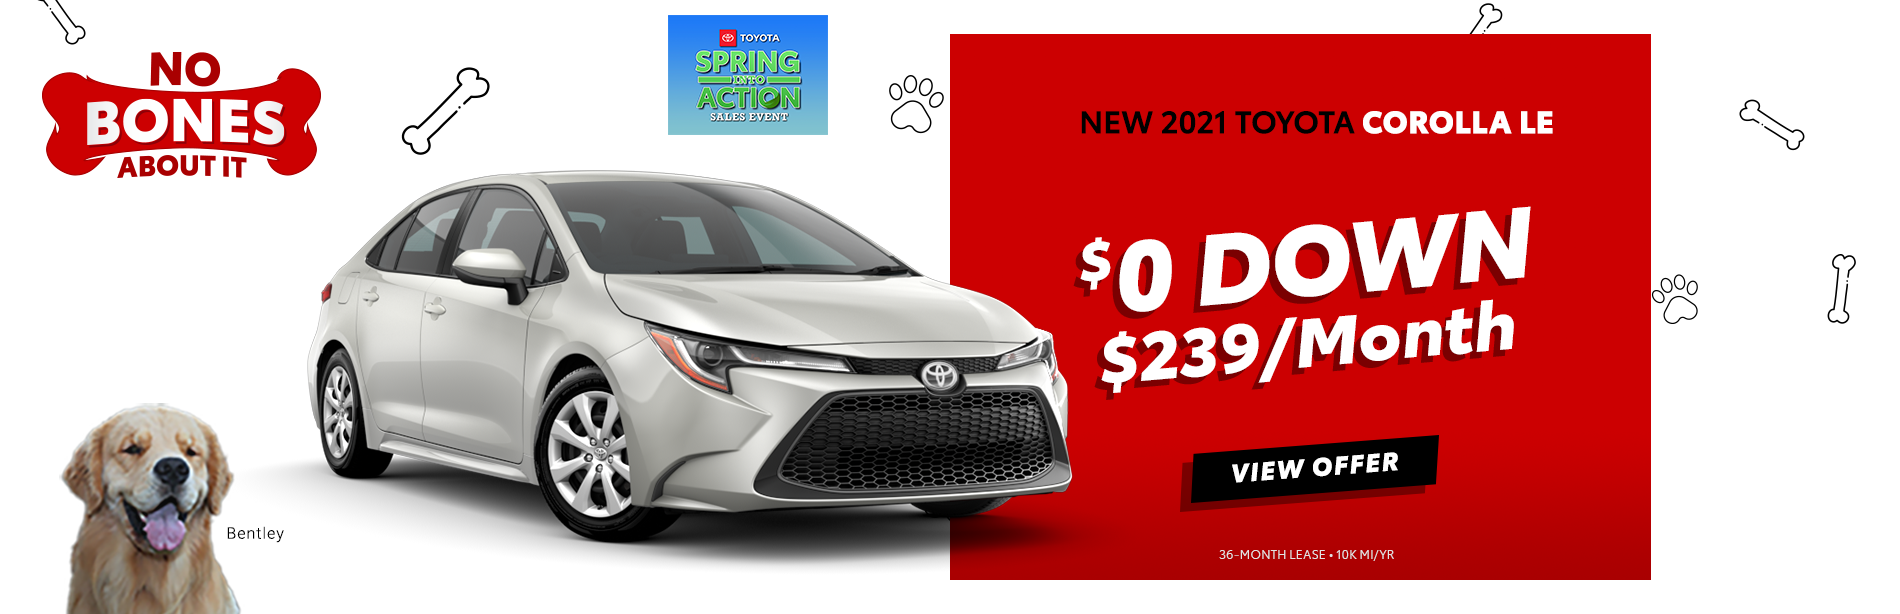 View Rochester Toyota Specials on new 2021 Corolla select models